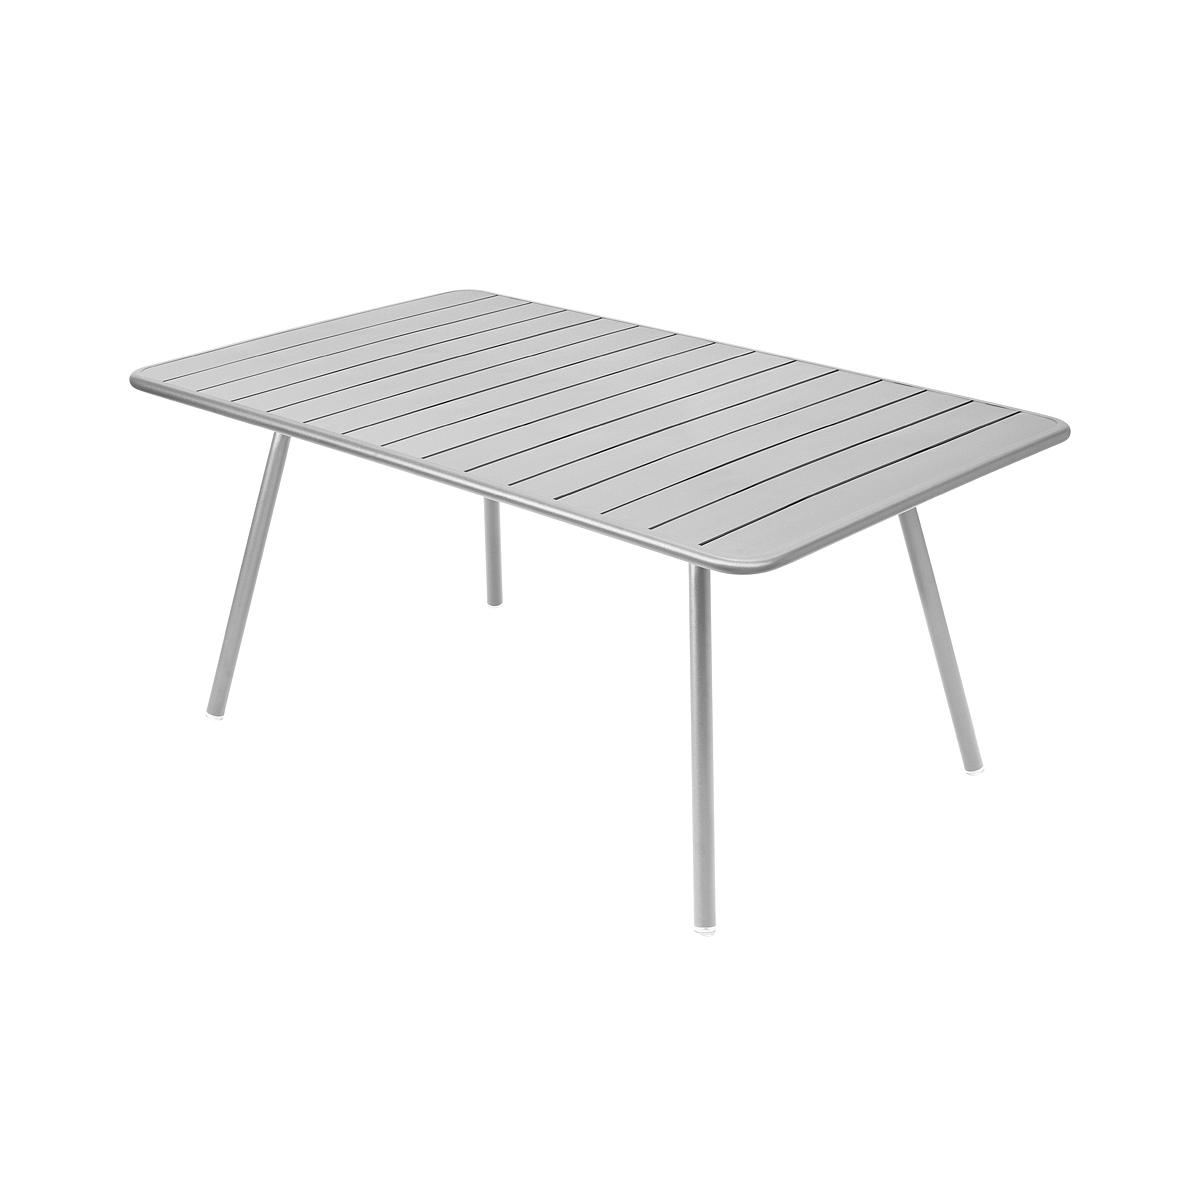 LUXEMBOURG by Fermob Table confort 6 gris métal